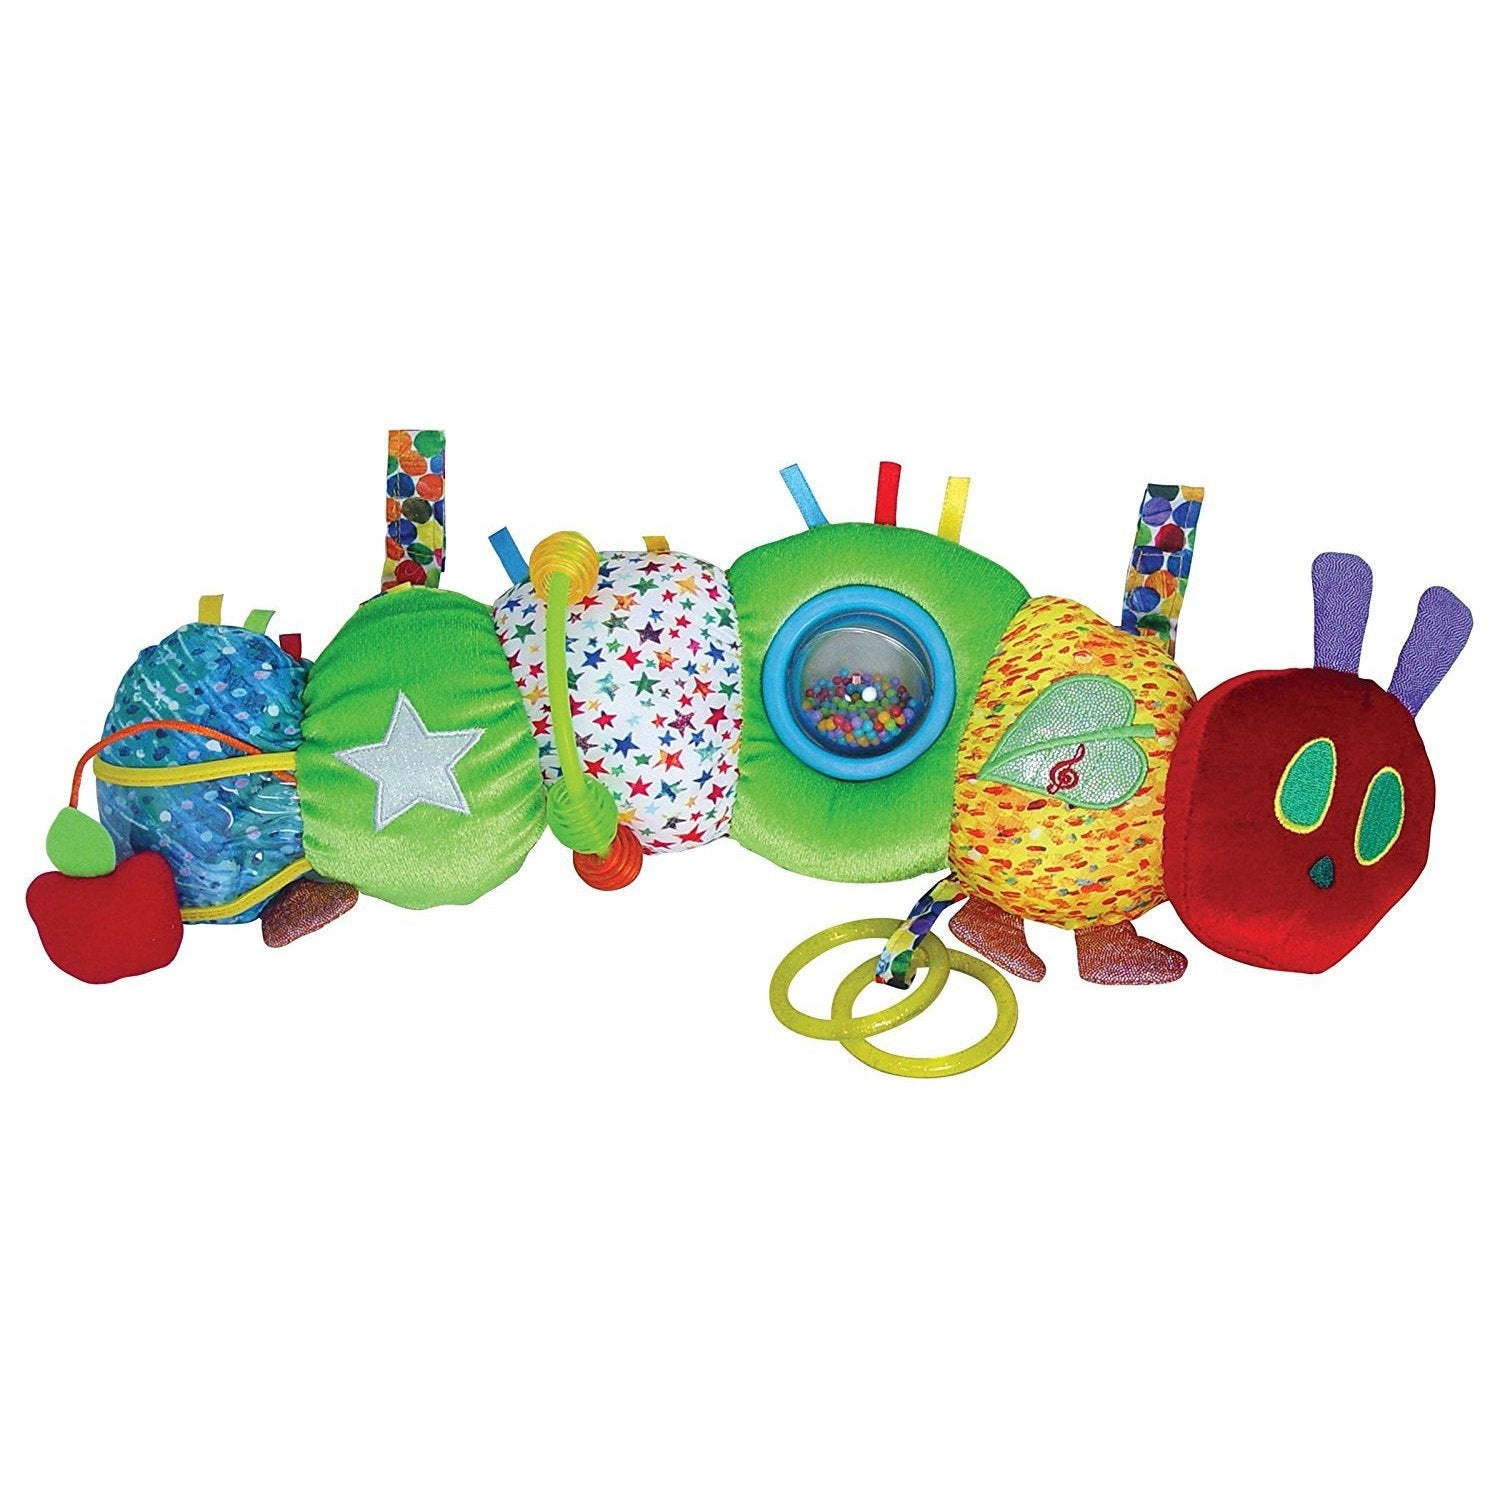 Kids Preferred World of Eric Carle The Very Hungry Caterp...